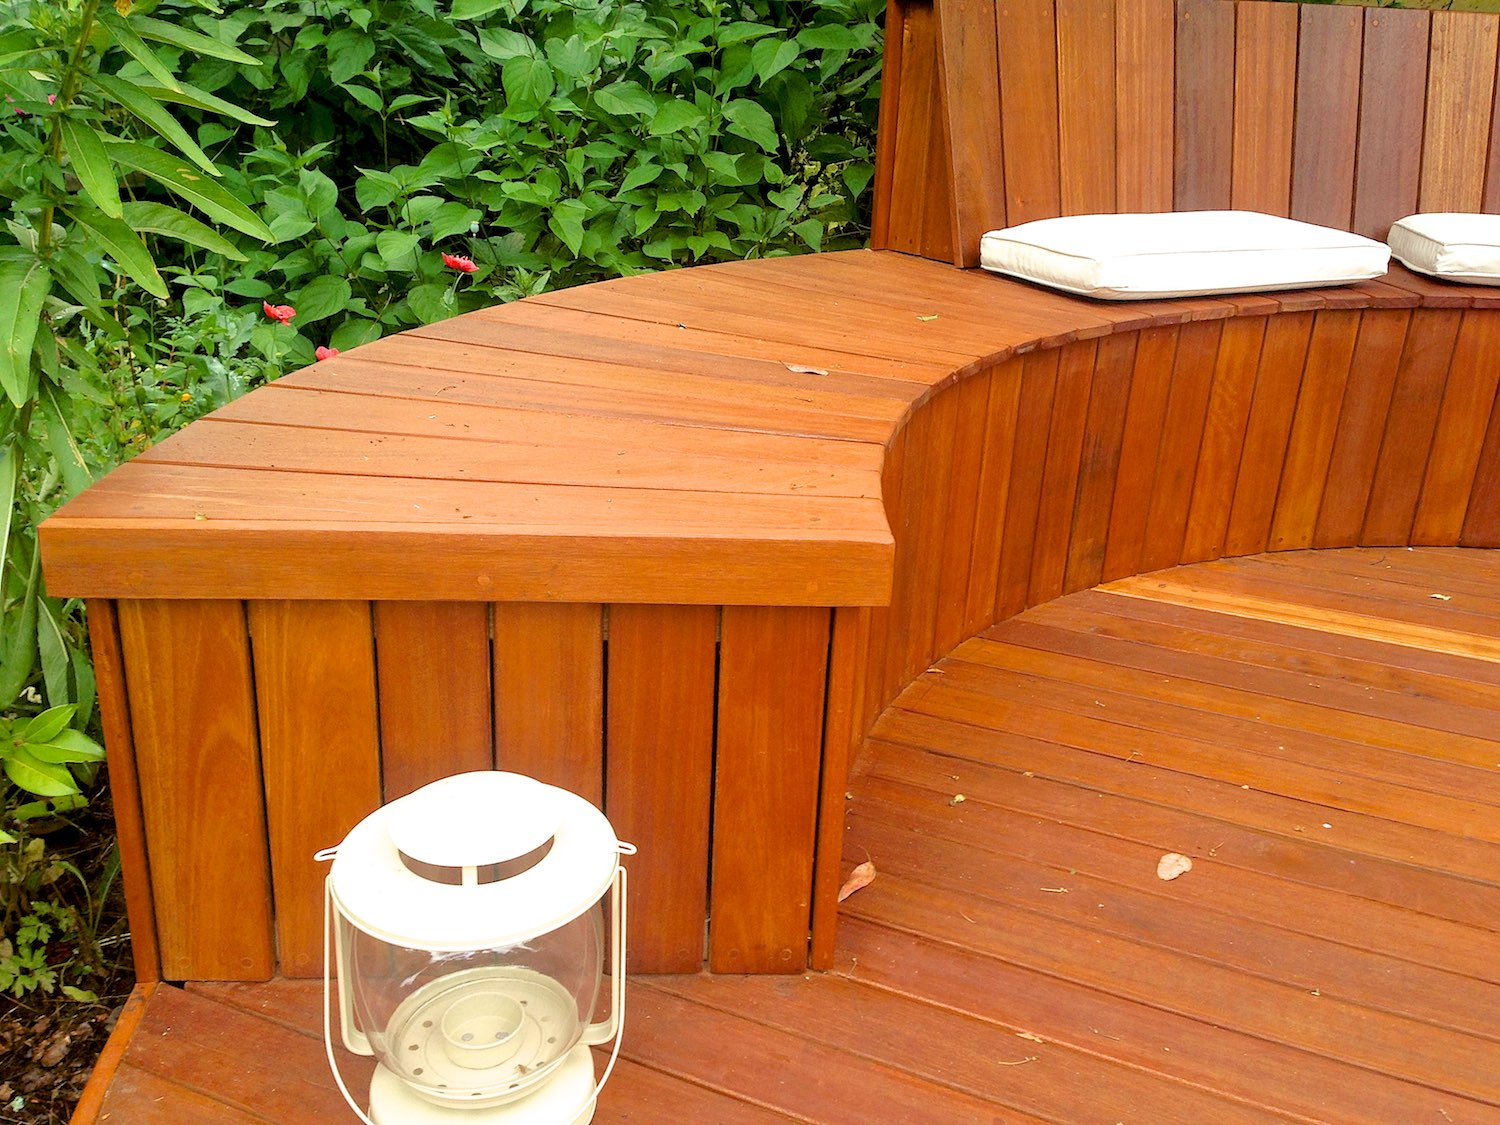 Decking designs uk landscaping u assured building ltd for Timber decking calculator